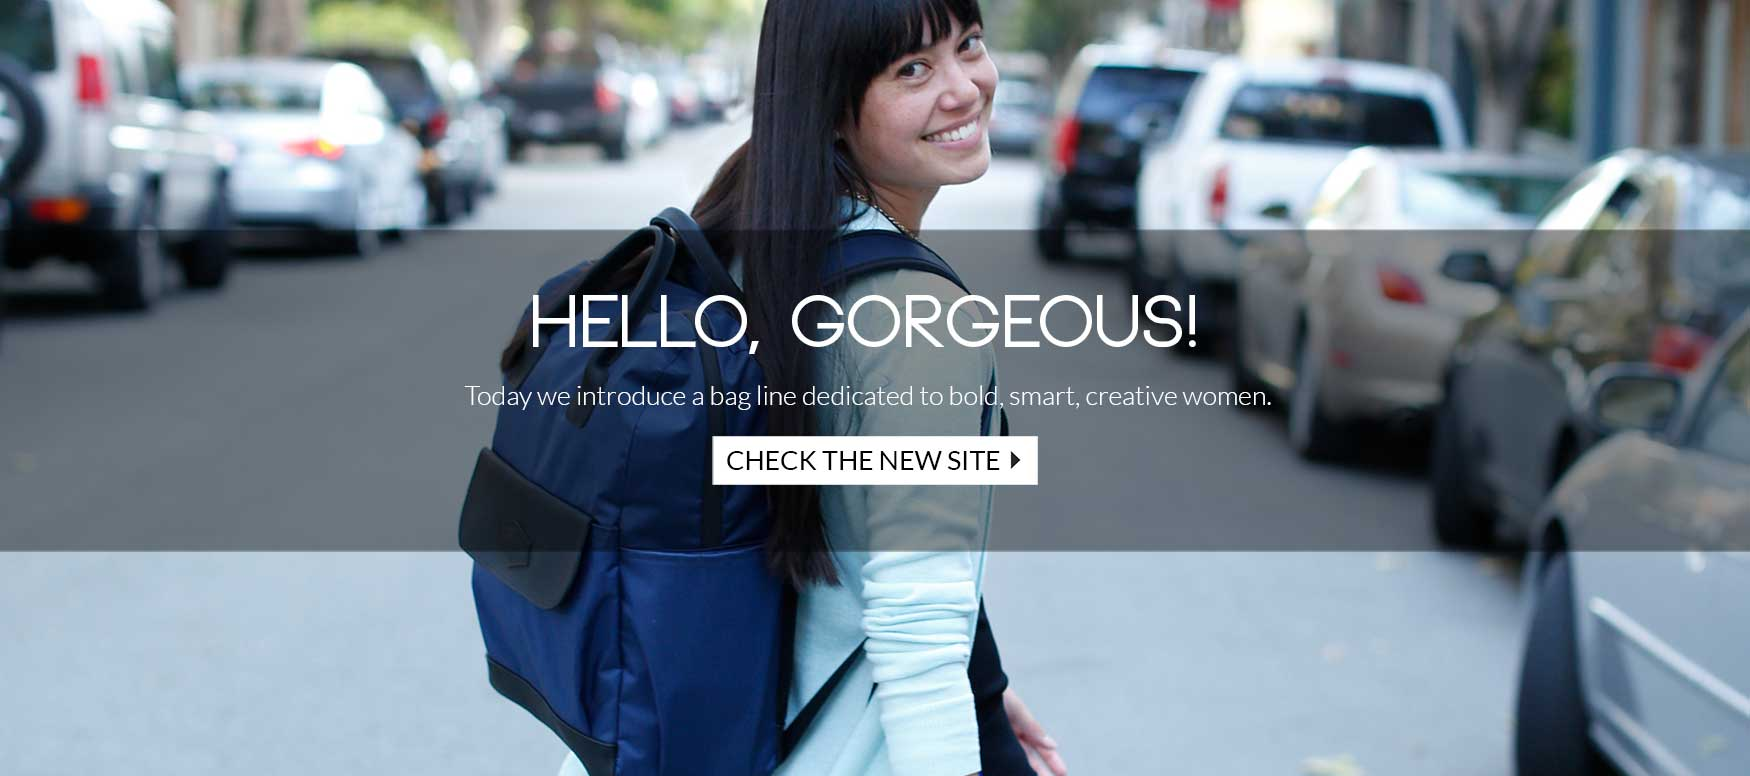 Peralta Bags - A New Bag Line Designed for Women